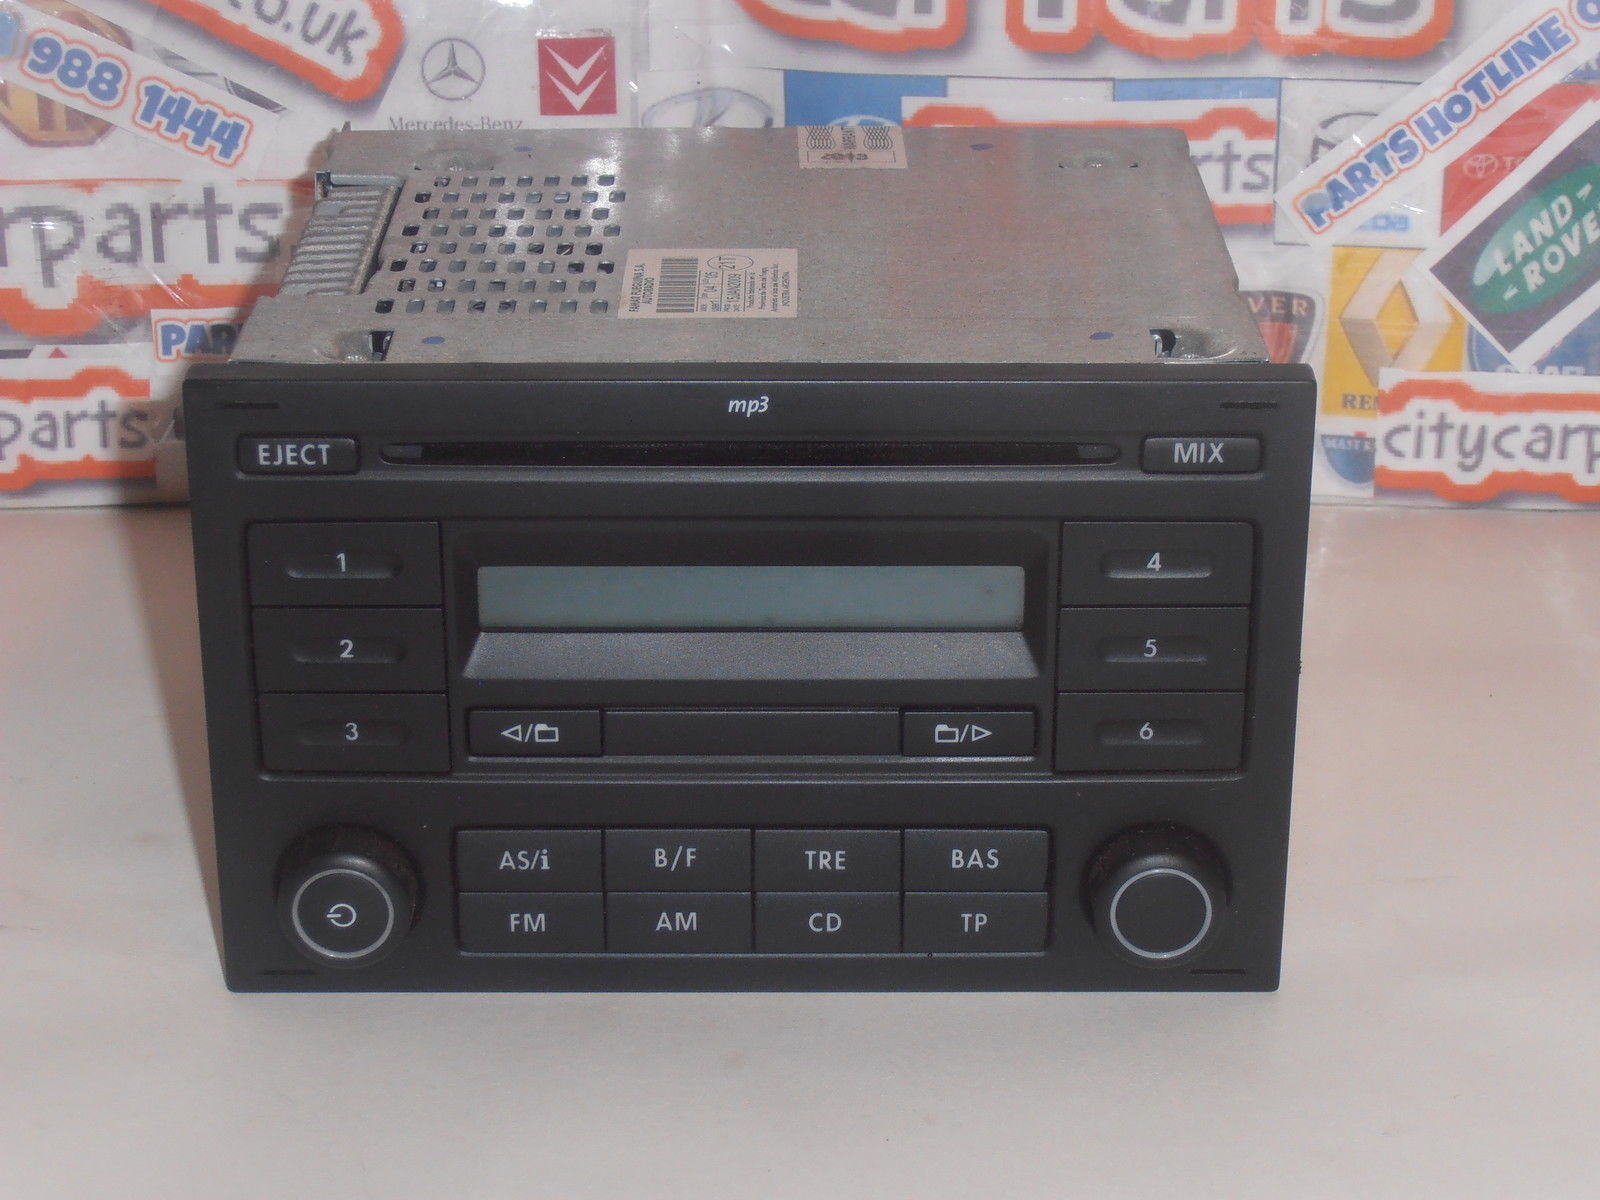 vw polo t5 fox lupo caddy rcd 200 radio cd mp3 player with code and warranty. Black Bedroom Furniture Sets. Home Design Ideas